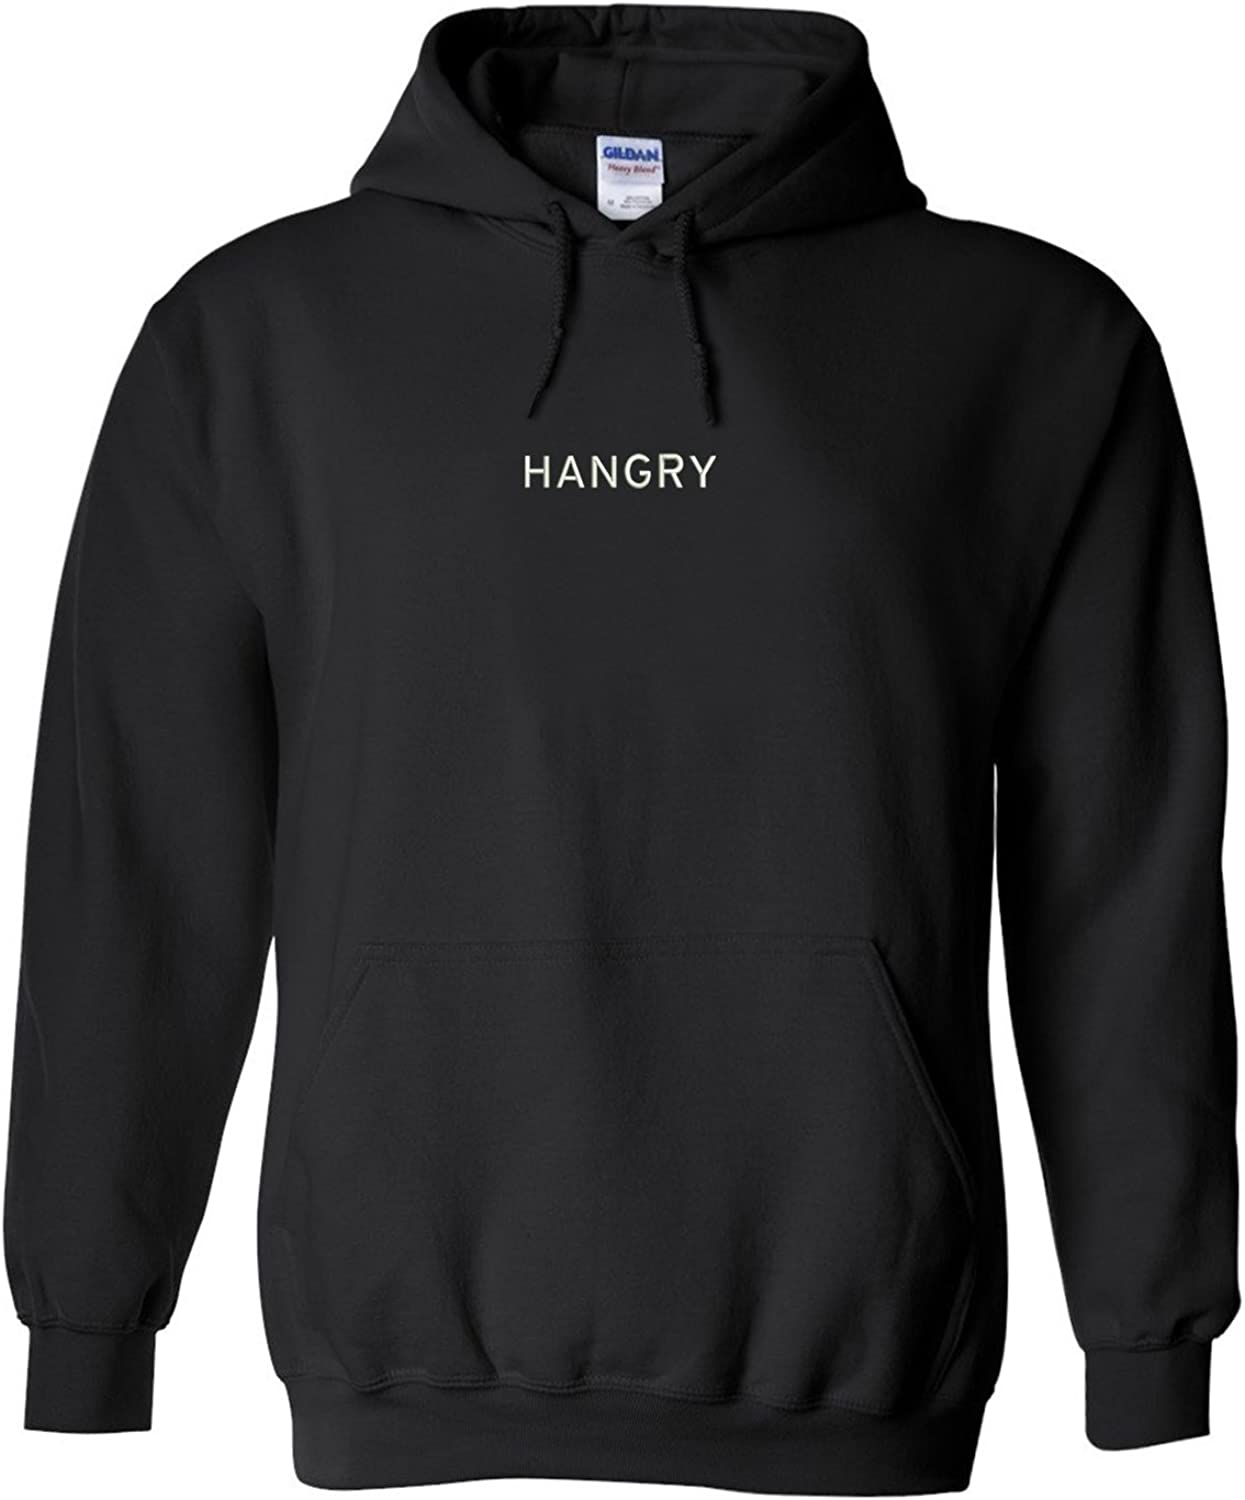 Trendy Apparel Shop Hangry Embroidered Heavy Blend Hoodie